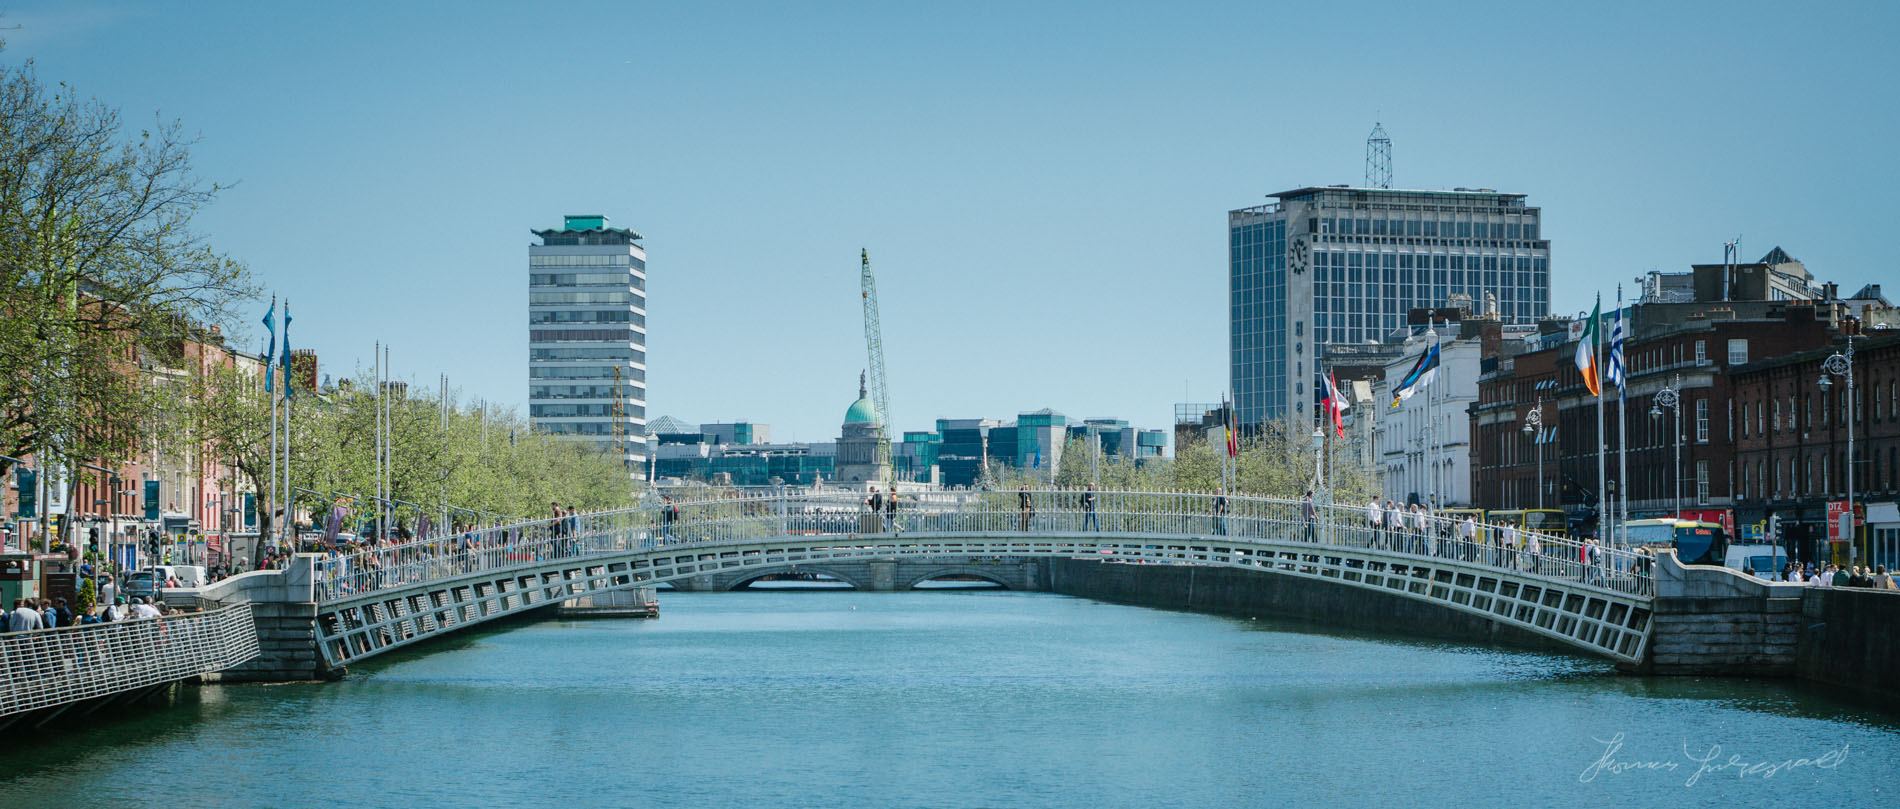 Beautiful day on the liffey